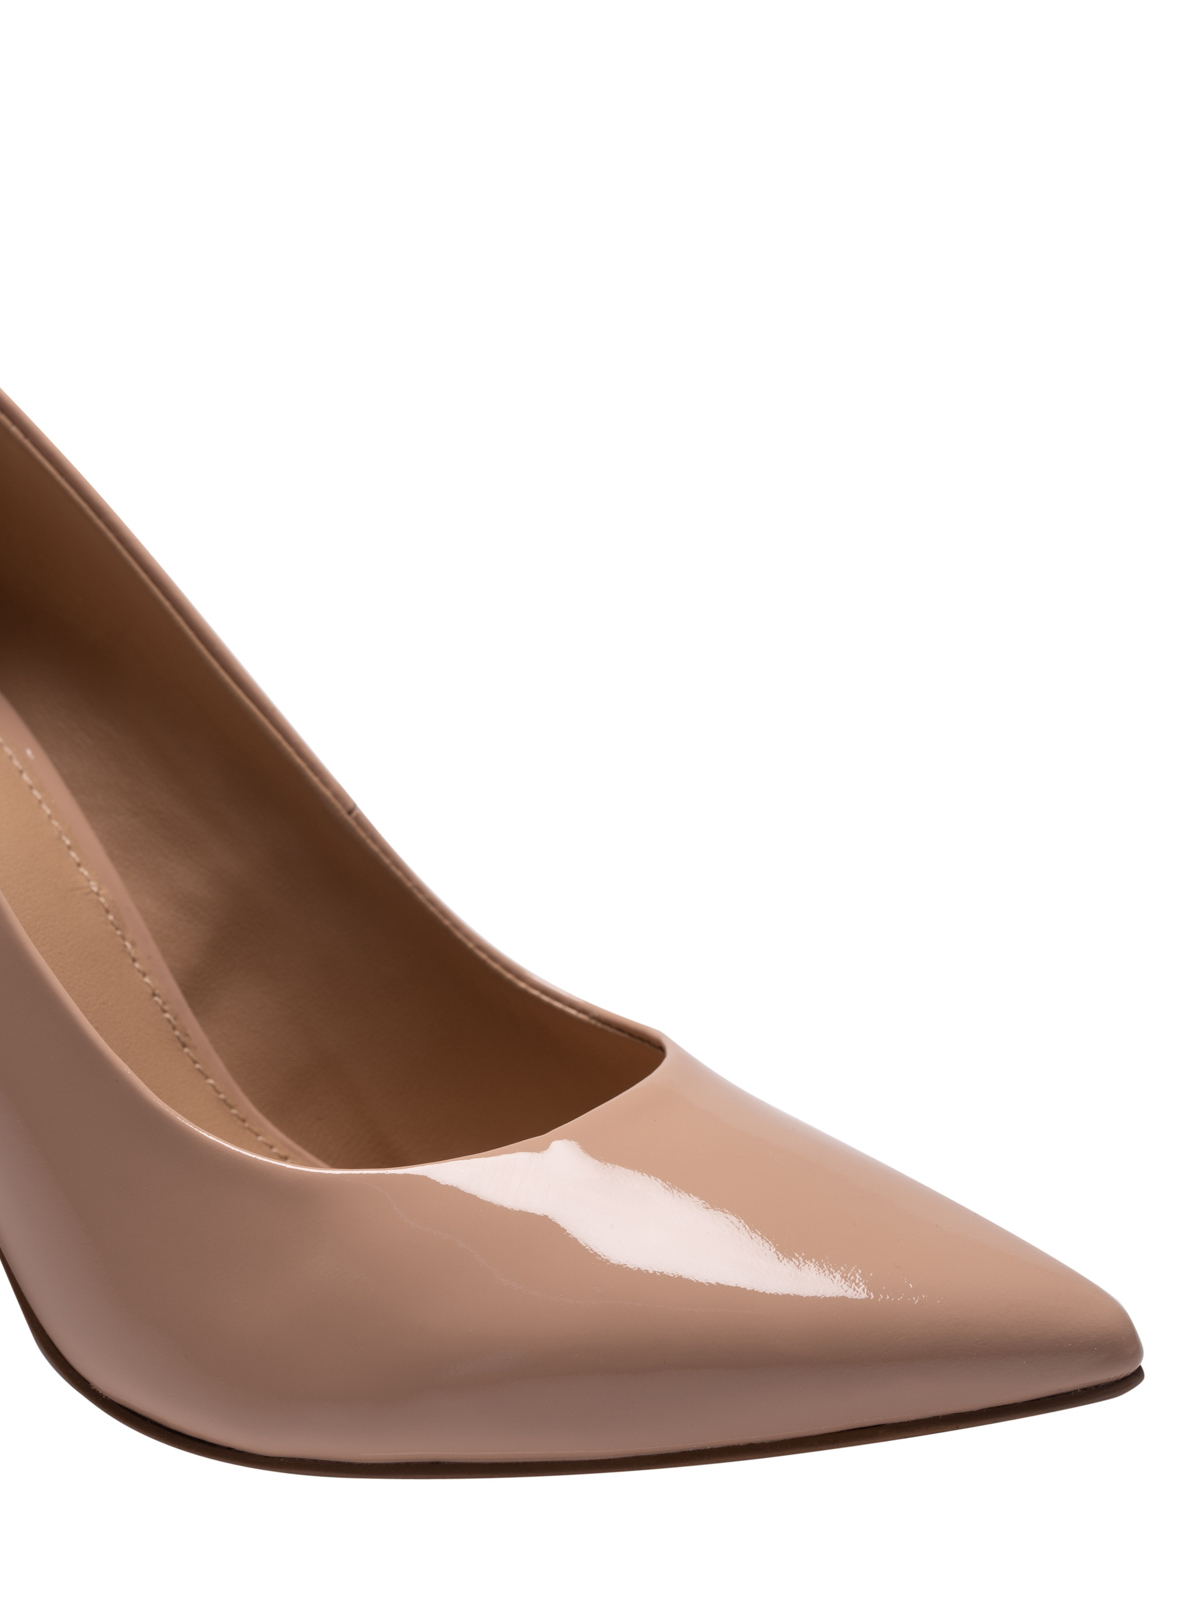 a3e71946d2a9 iKRIX MICHAEL KORS  court shoes - Claire nude patent leather pumps